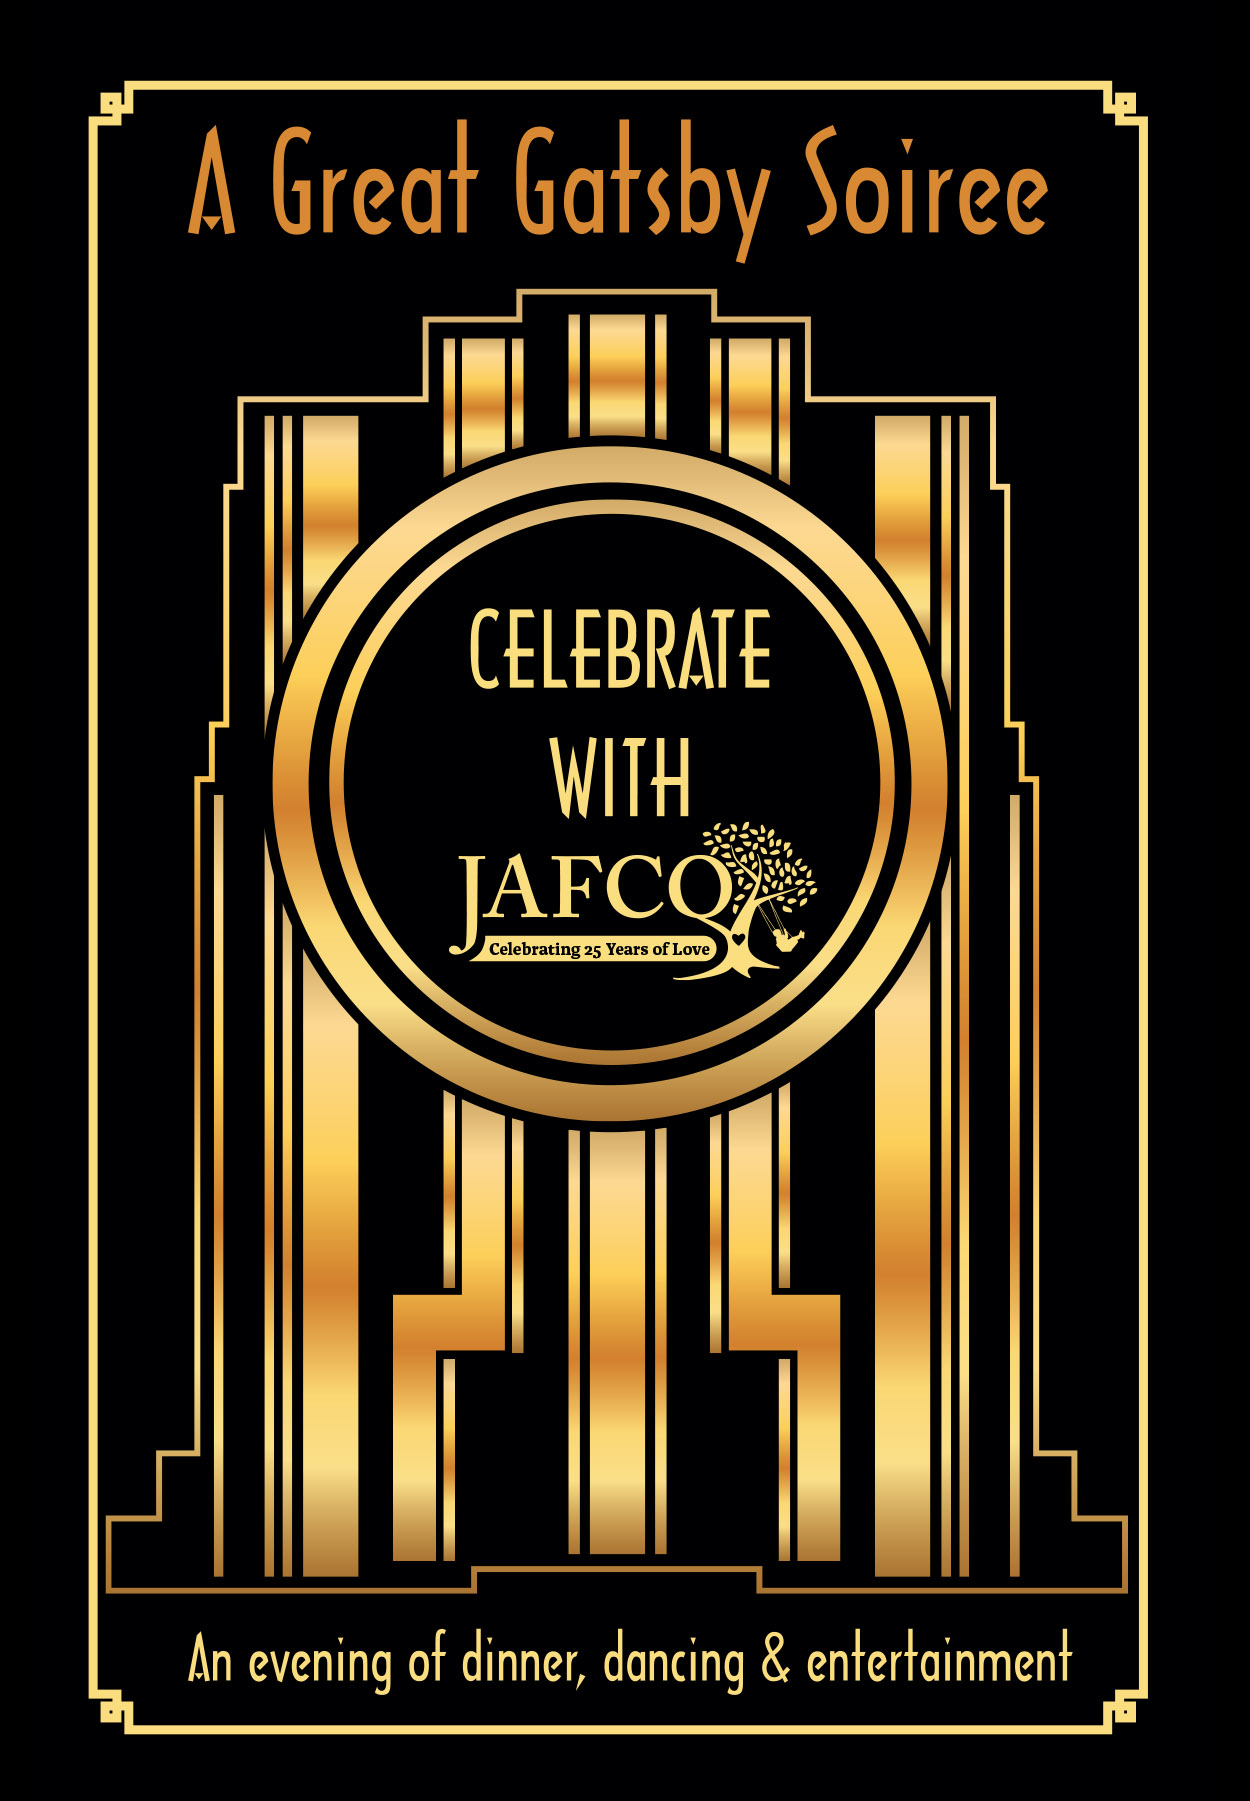 A Great Gatsby Soiree JAFCO